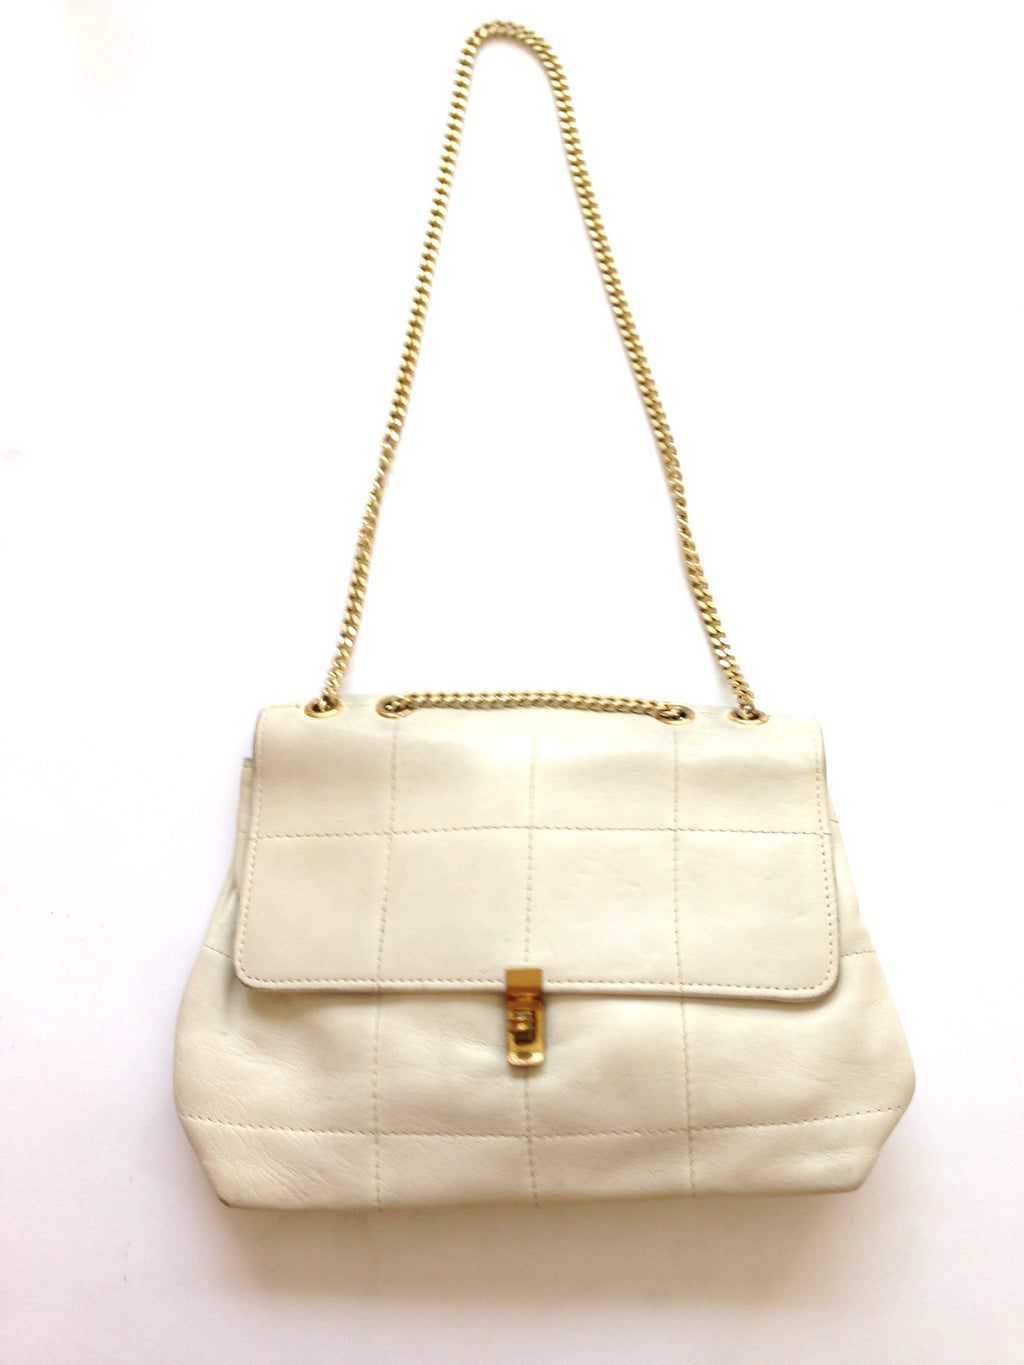 Vintage Chain Leather Bag